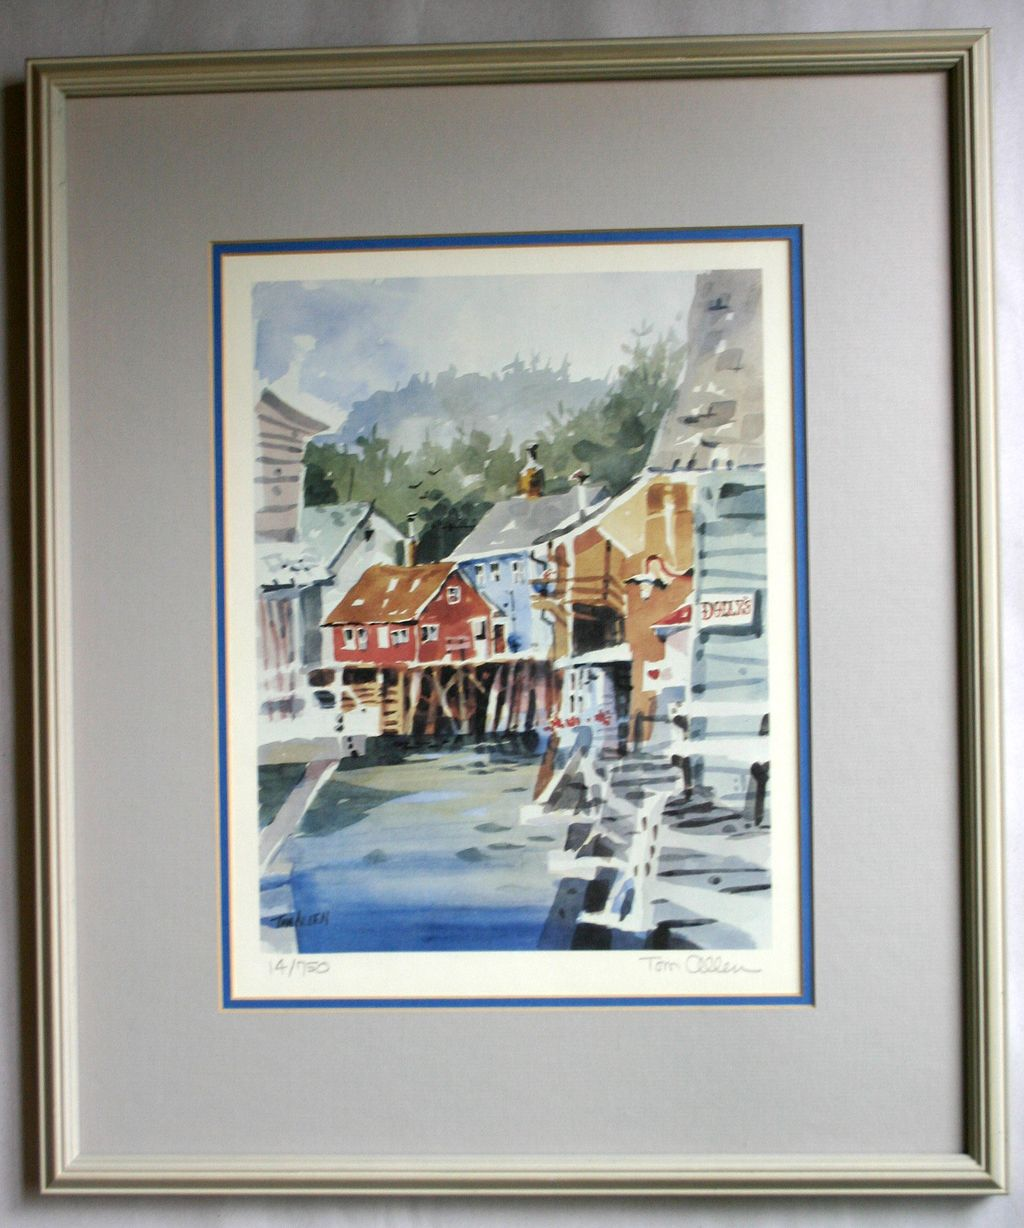 Tom Allen, Signed Numbered Lithograph of a Harbor Side Village